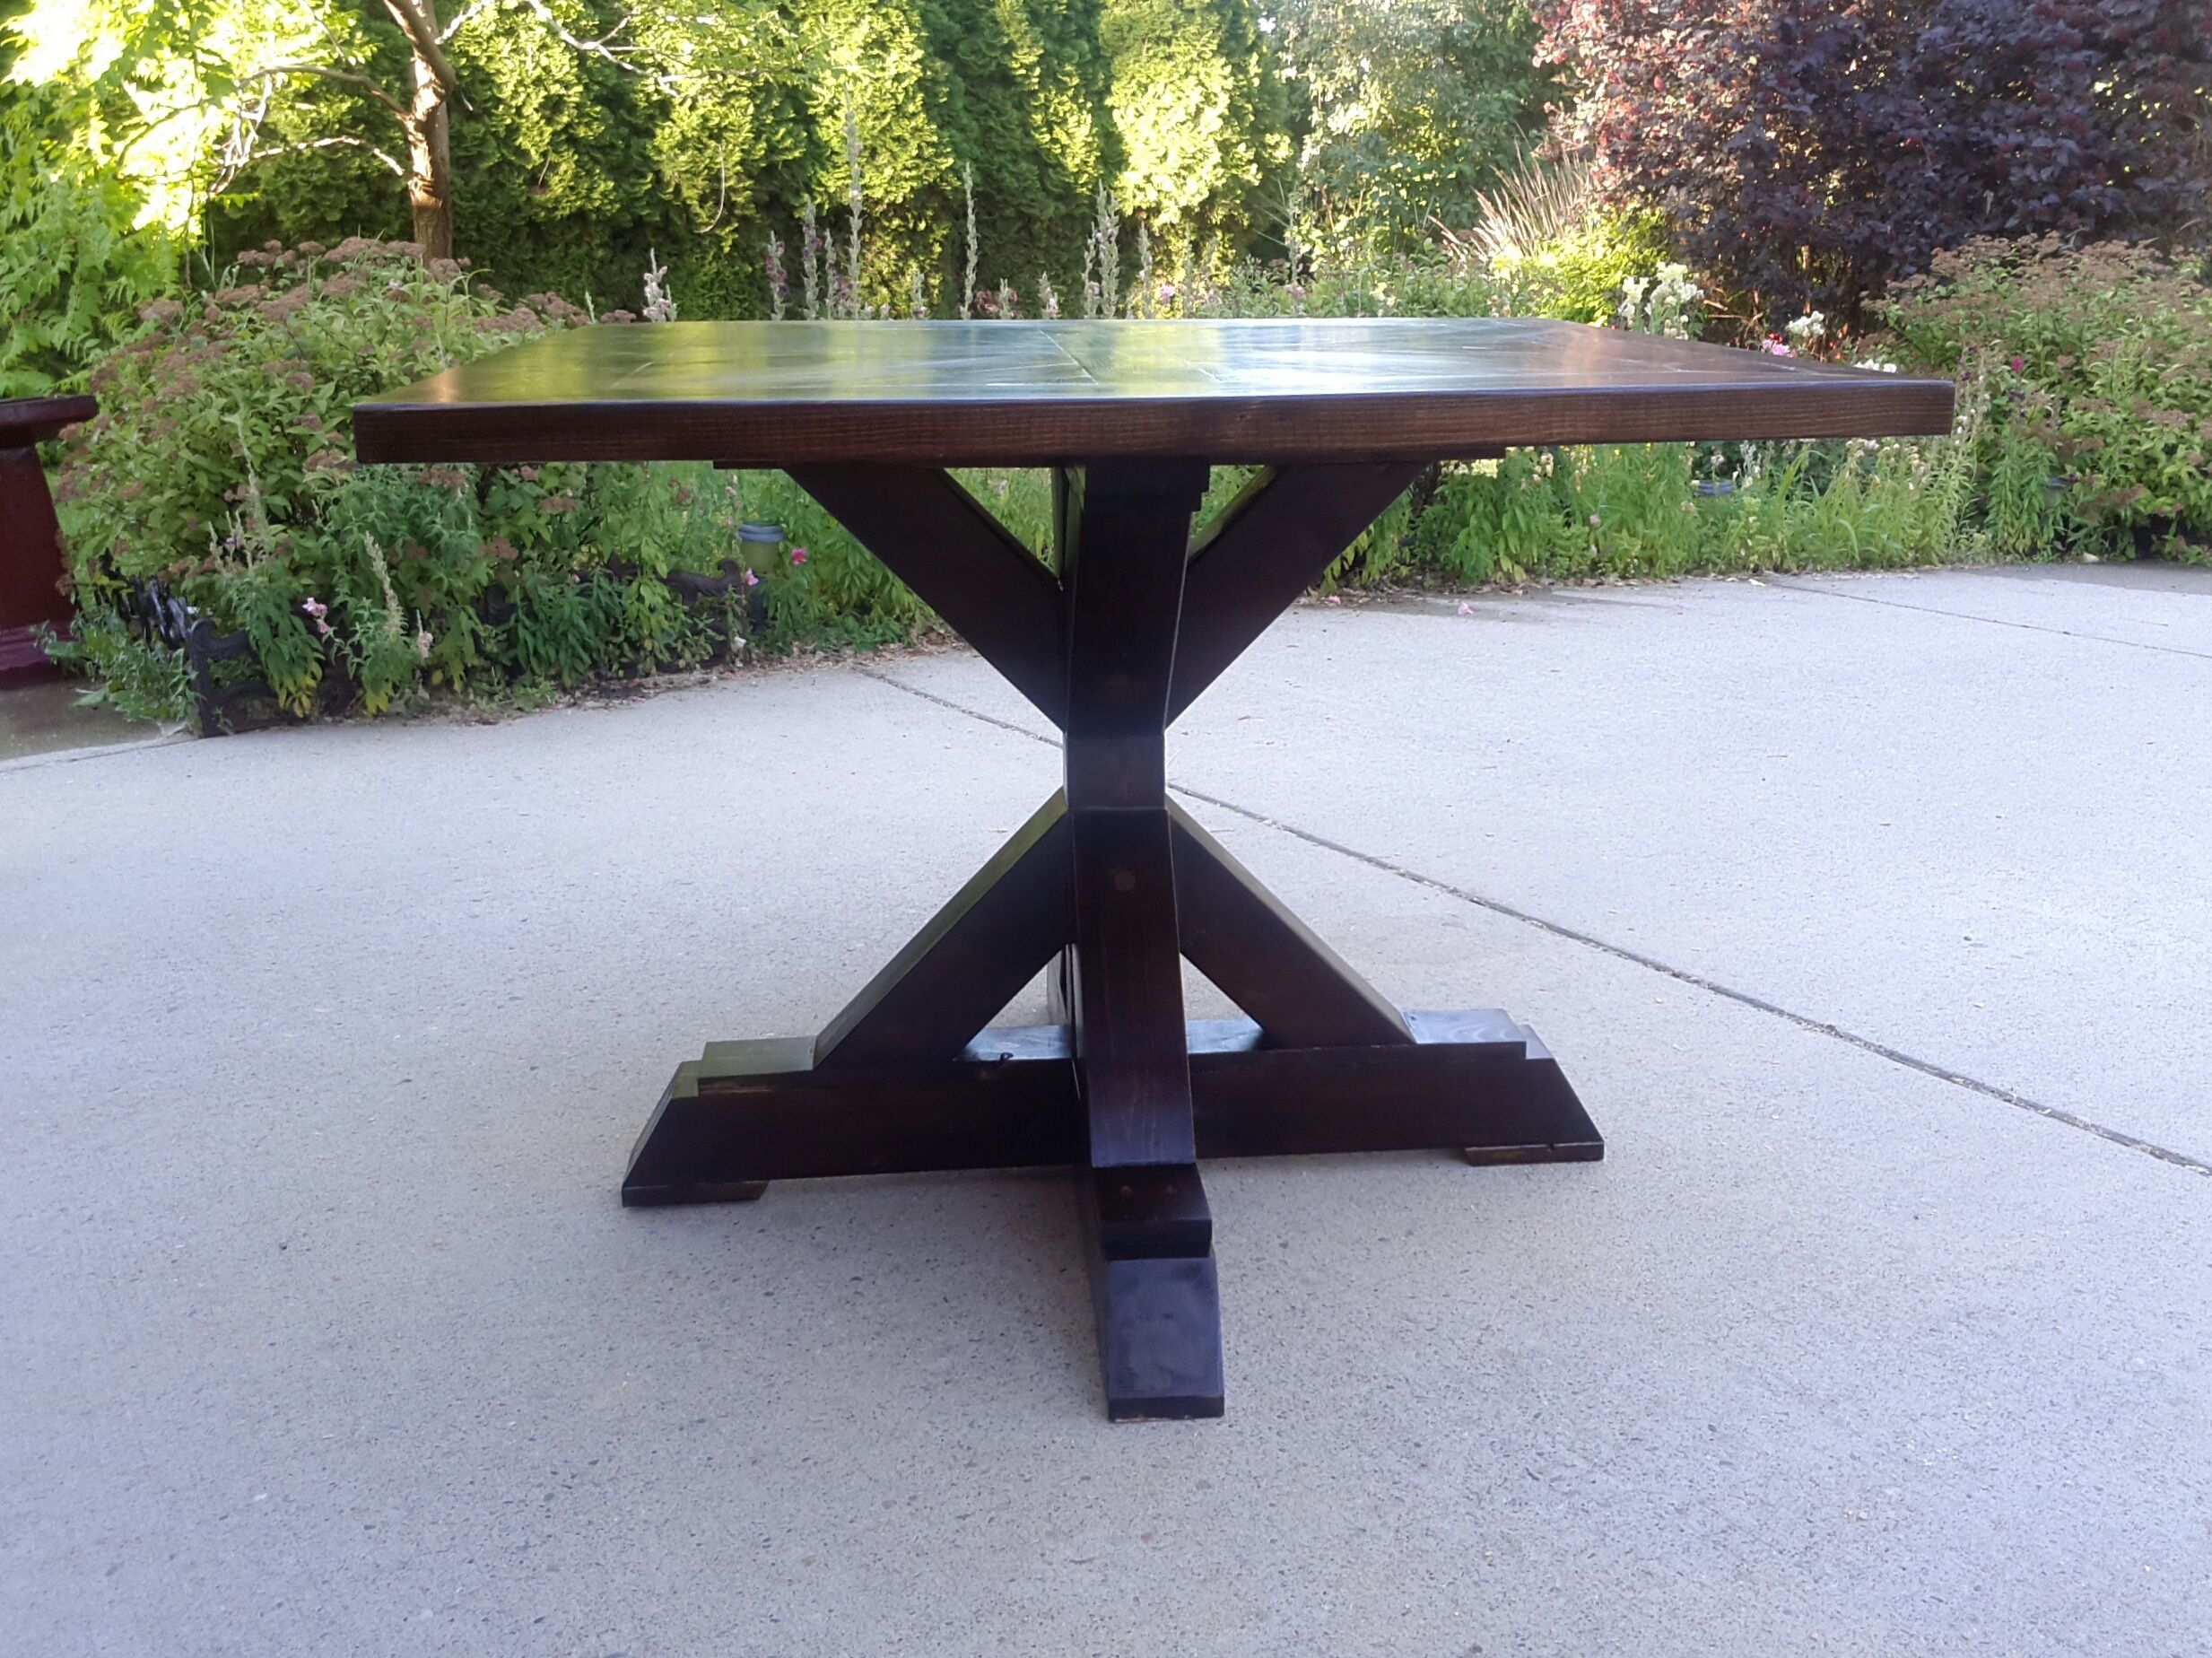 How to build a table base for a round table - X Base Pedestal Table Ana White Dyi Plans The Top Of This Is